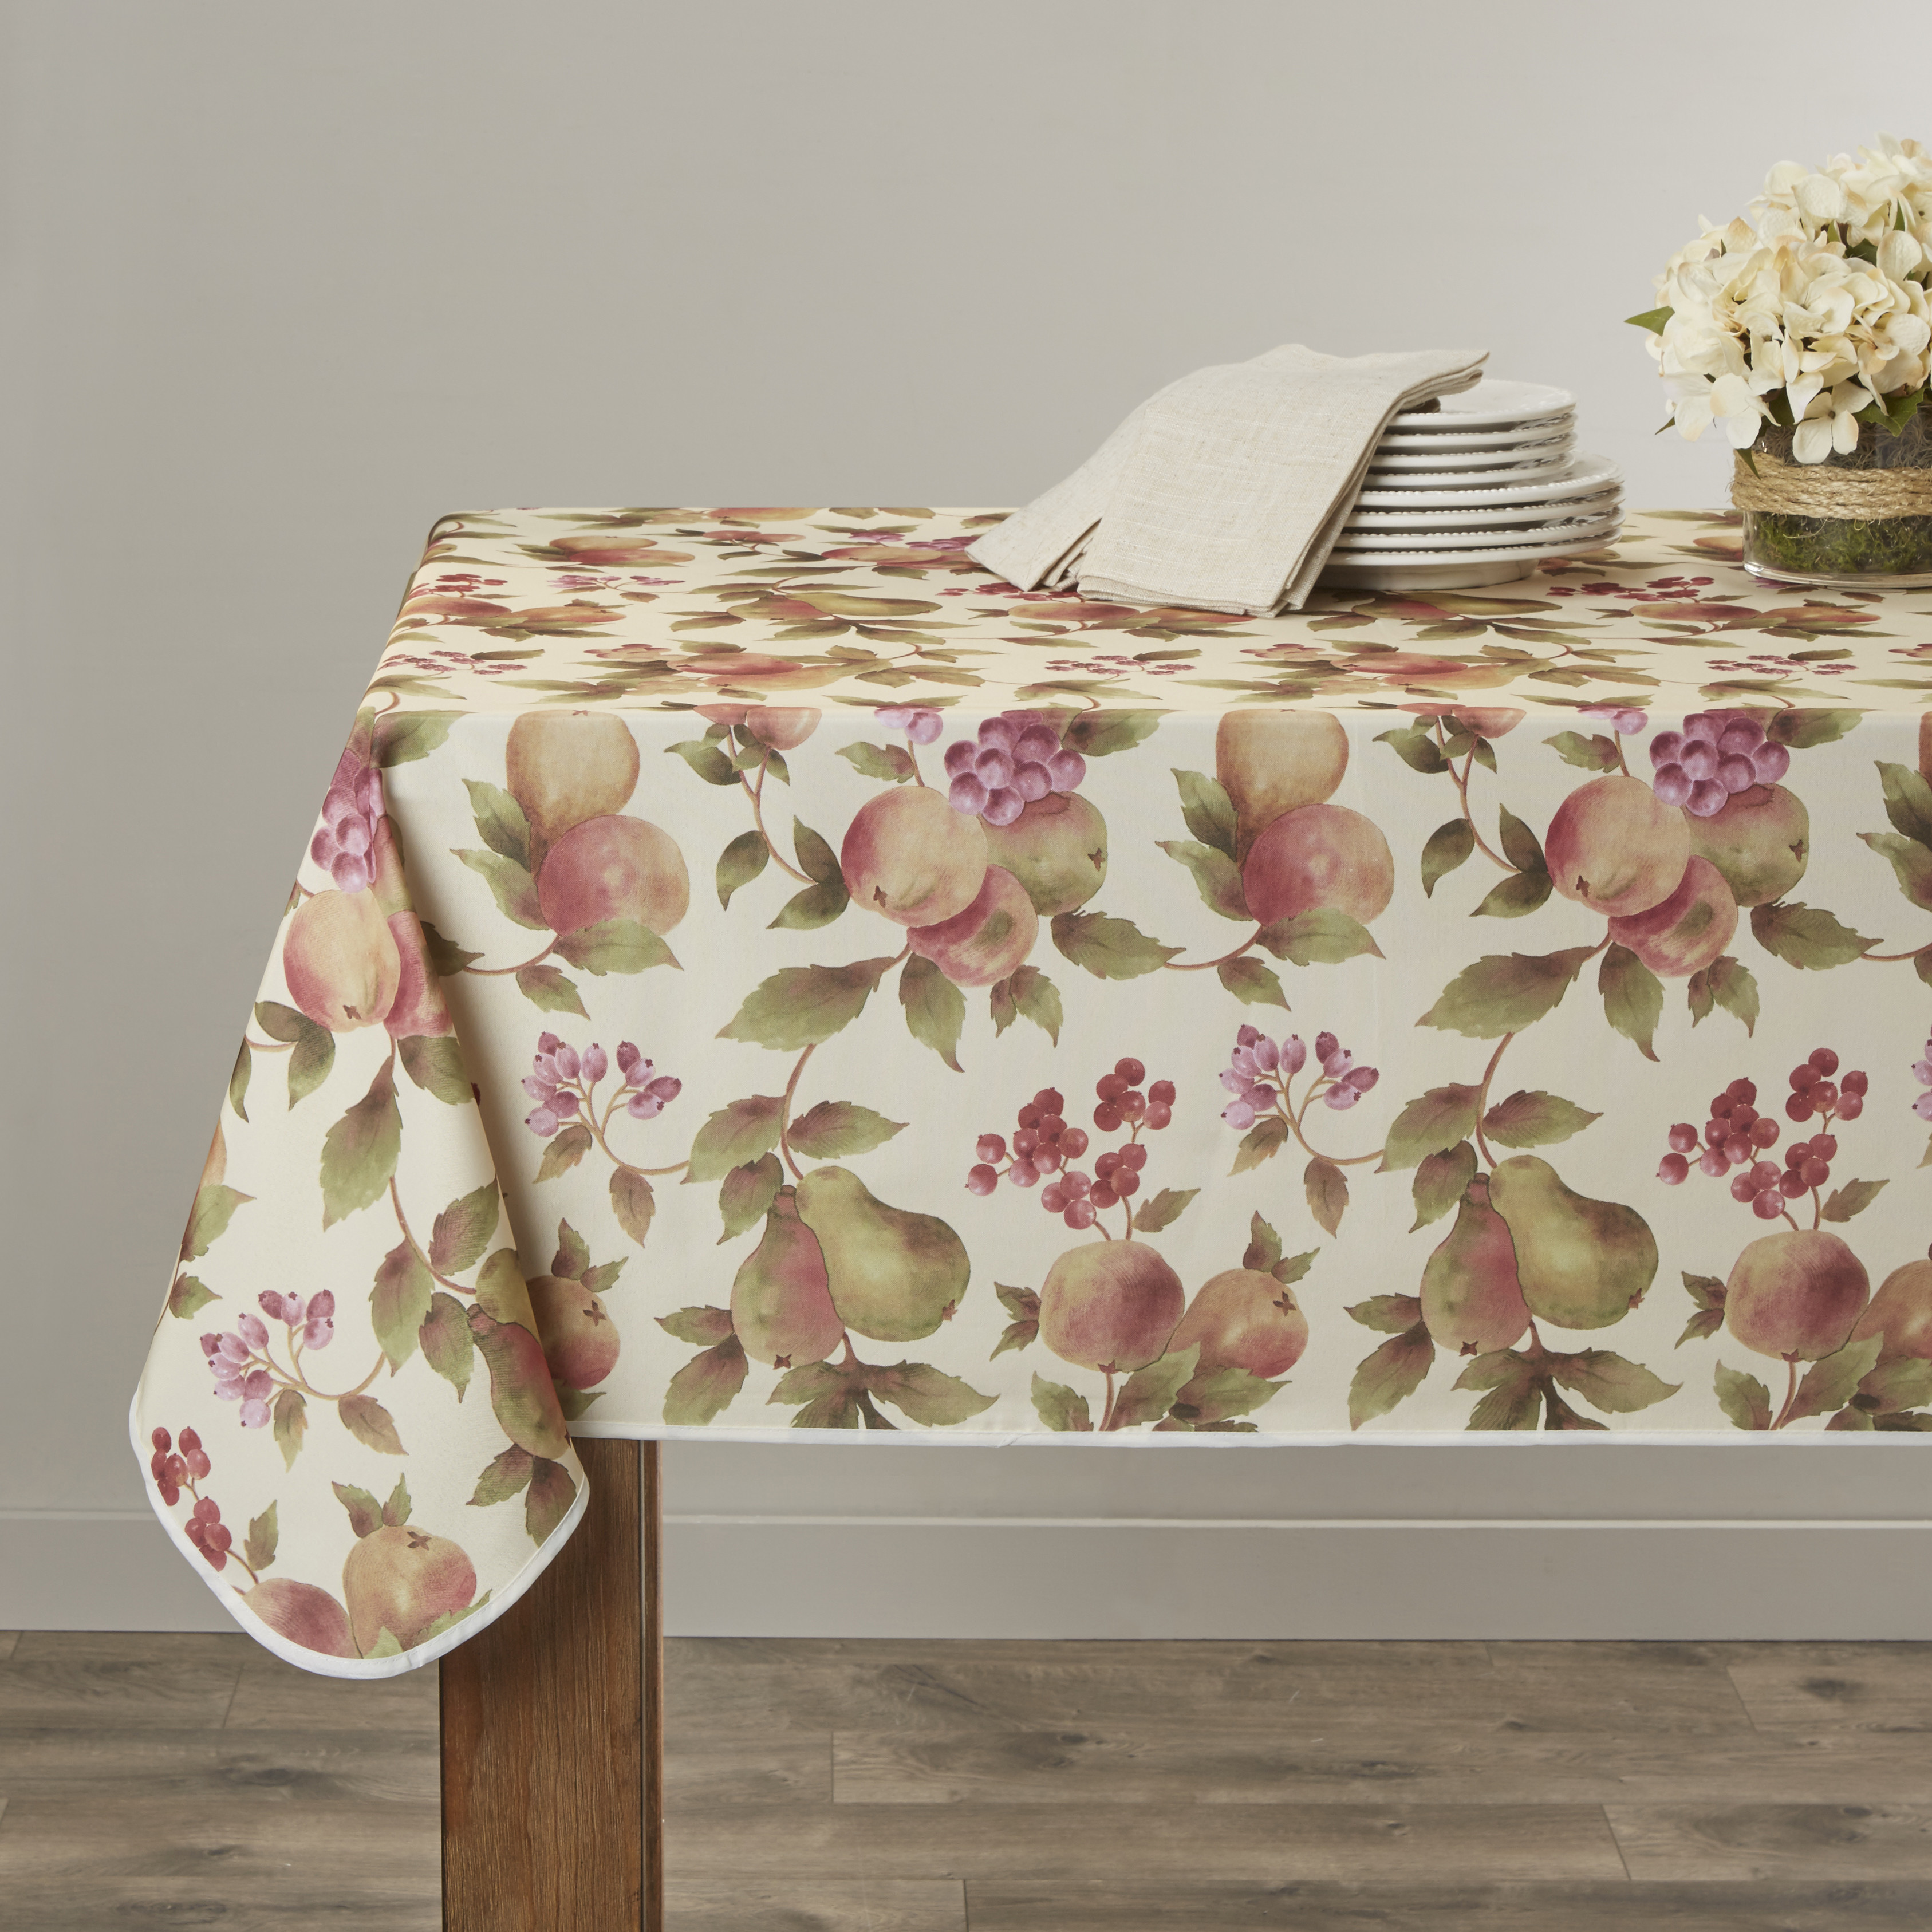 European Fruttela Tablecloths